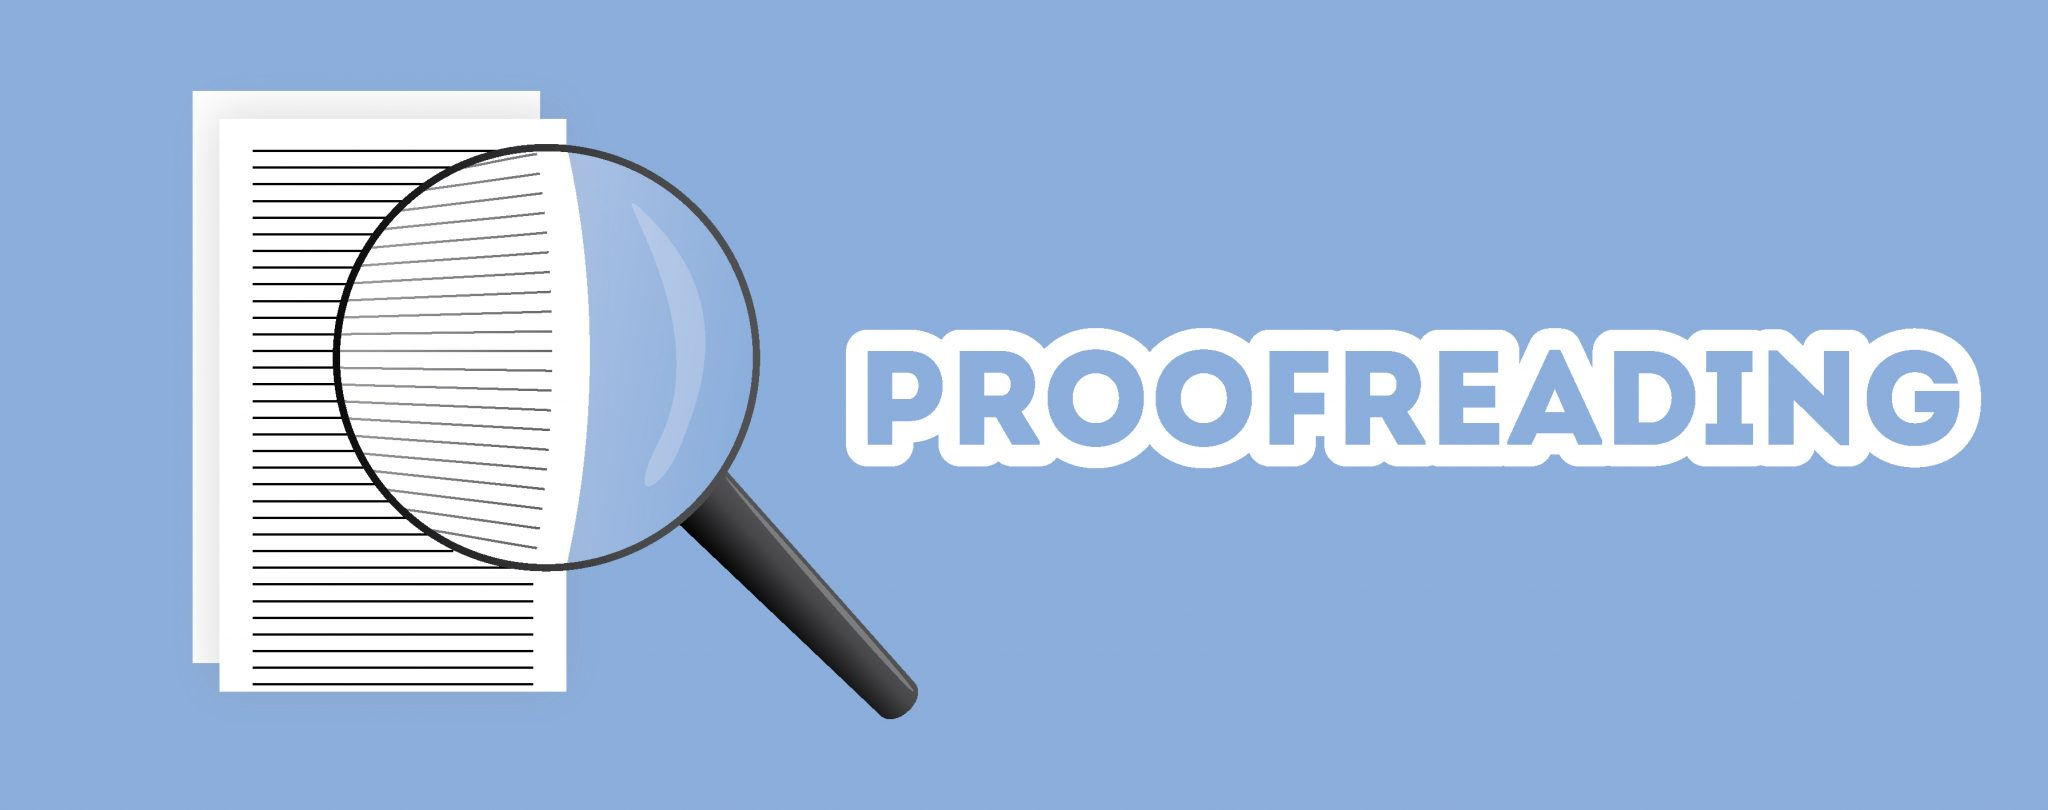 proofread my dissertation uk Proofreading agencies are filling an academic support gap in uk universities, raising concerns around policy and plagiarism.